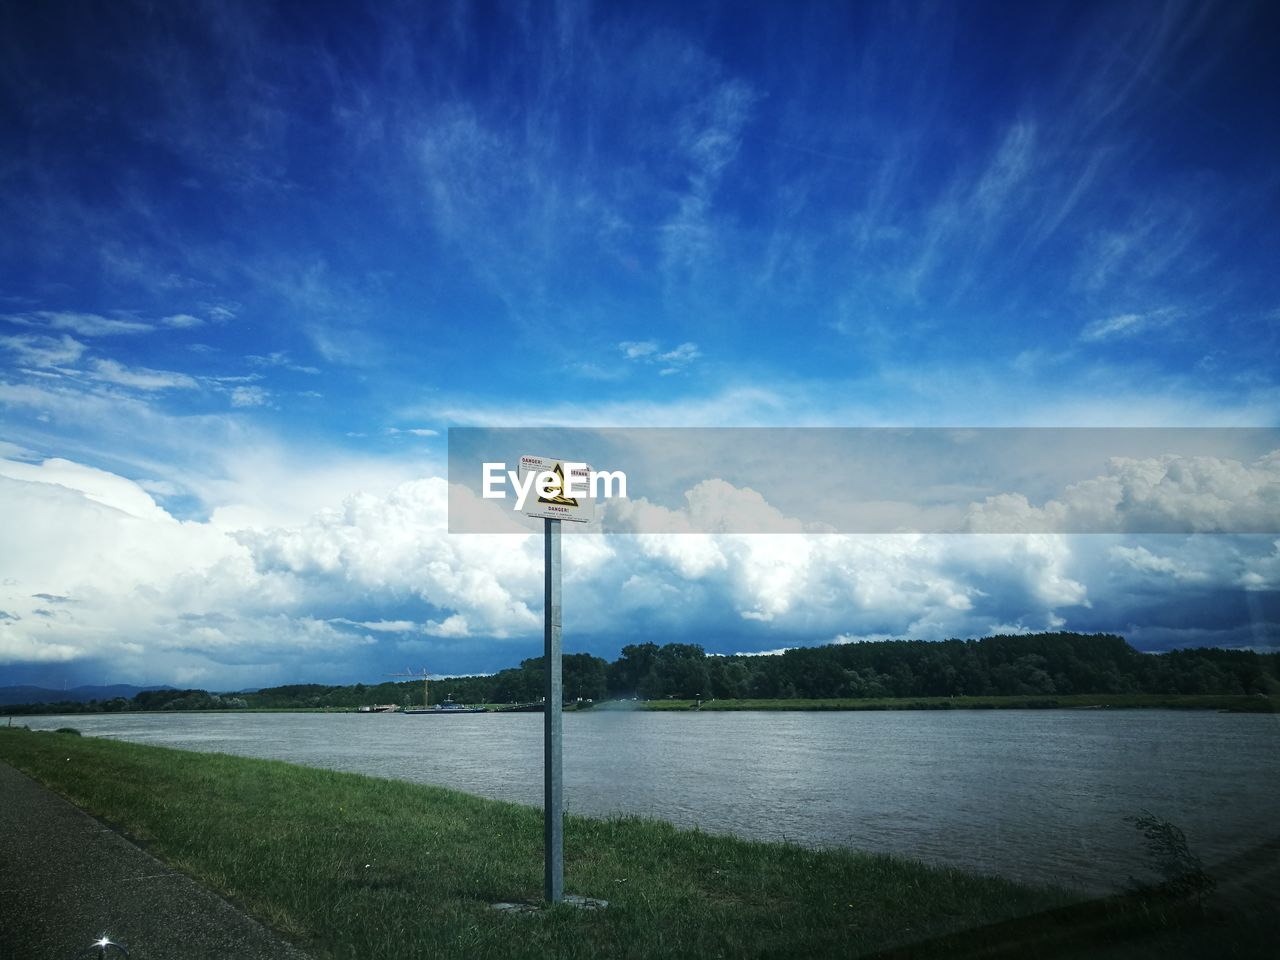 sky, tranquility, cloud - sky, tranquil scene, nature, scenics, beauty in nature, day, landscape, outdoors, no people, road, grass, road sign, blue, water